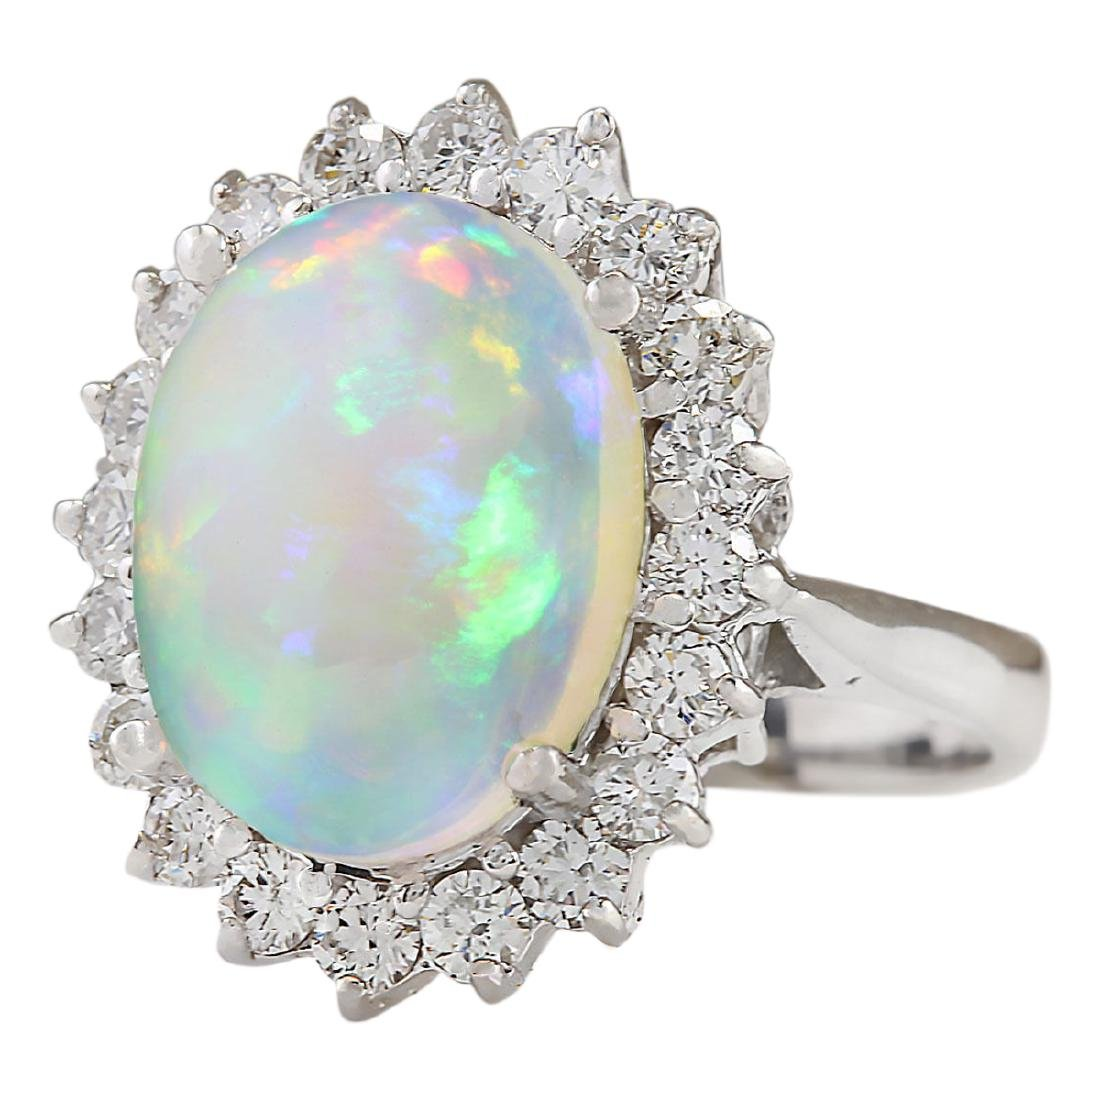 5.19 CTW Natural Opal And Diamond Ring In18K White Gold - 2